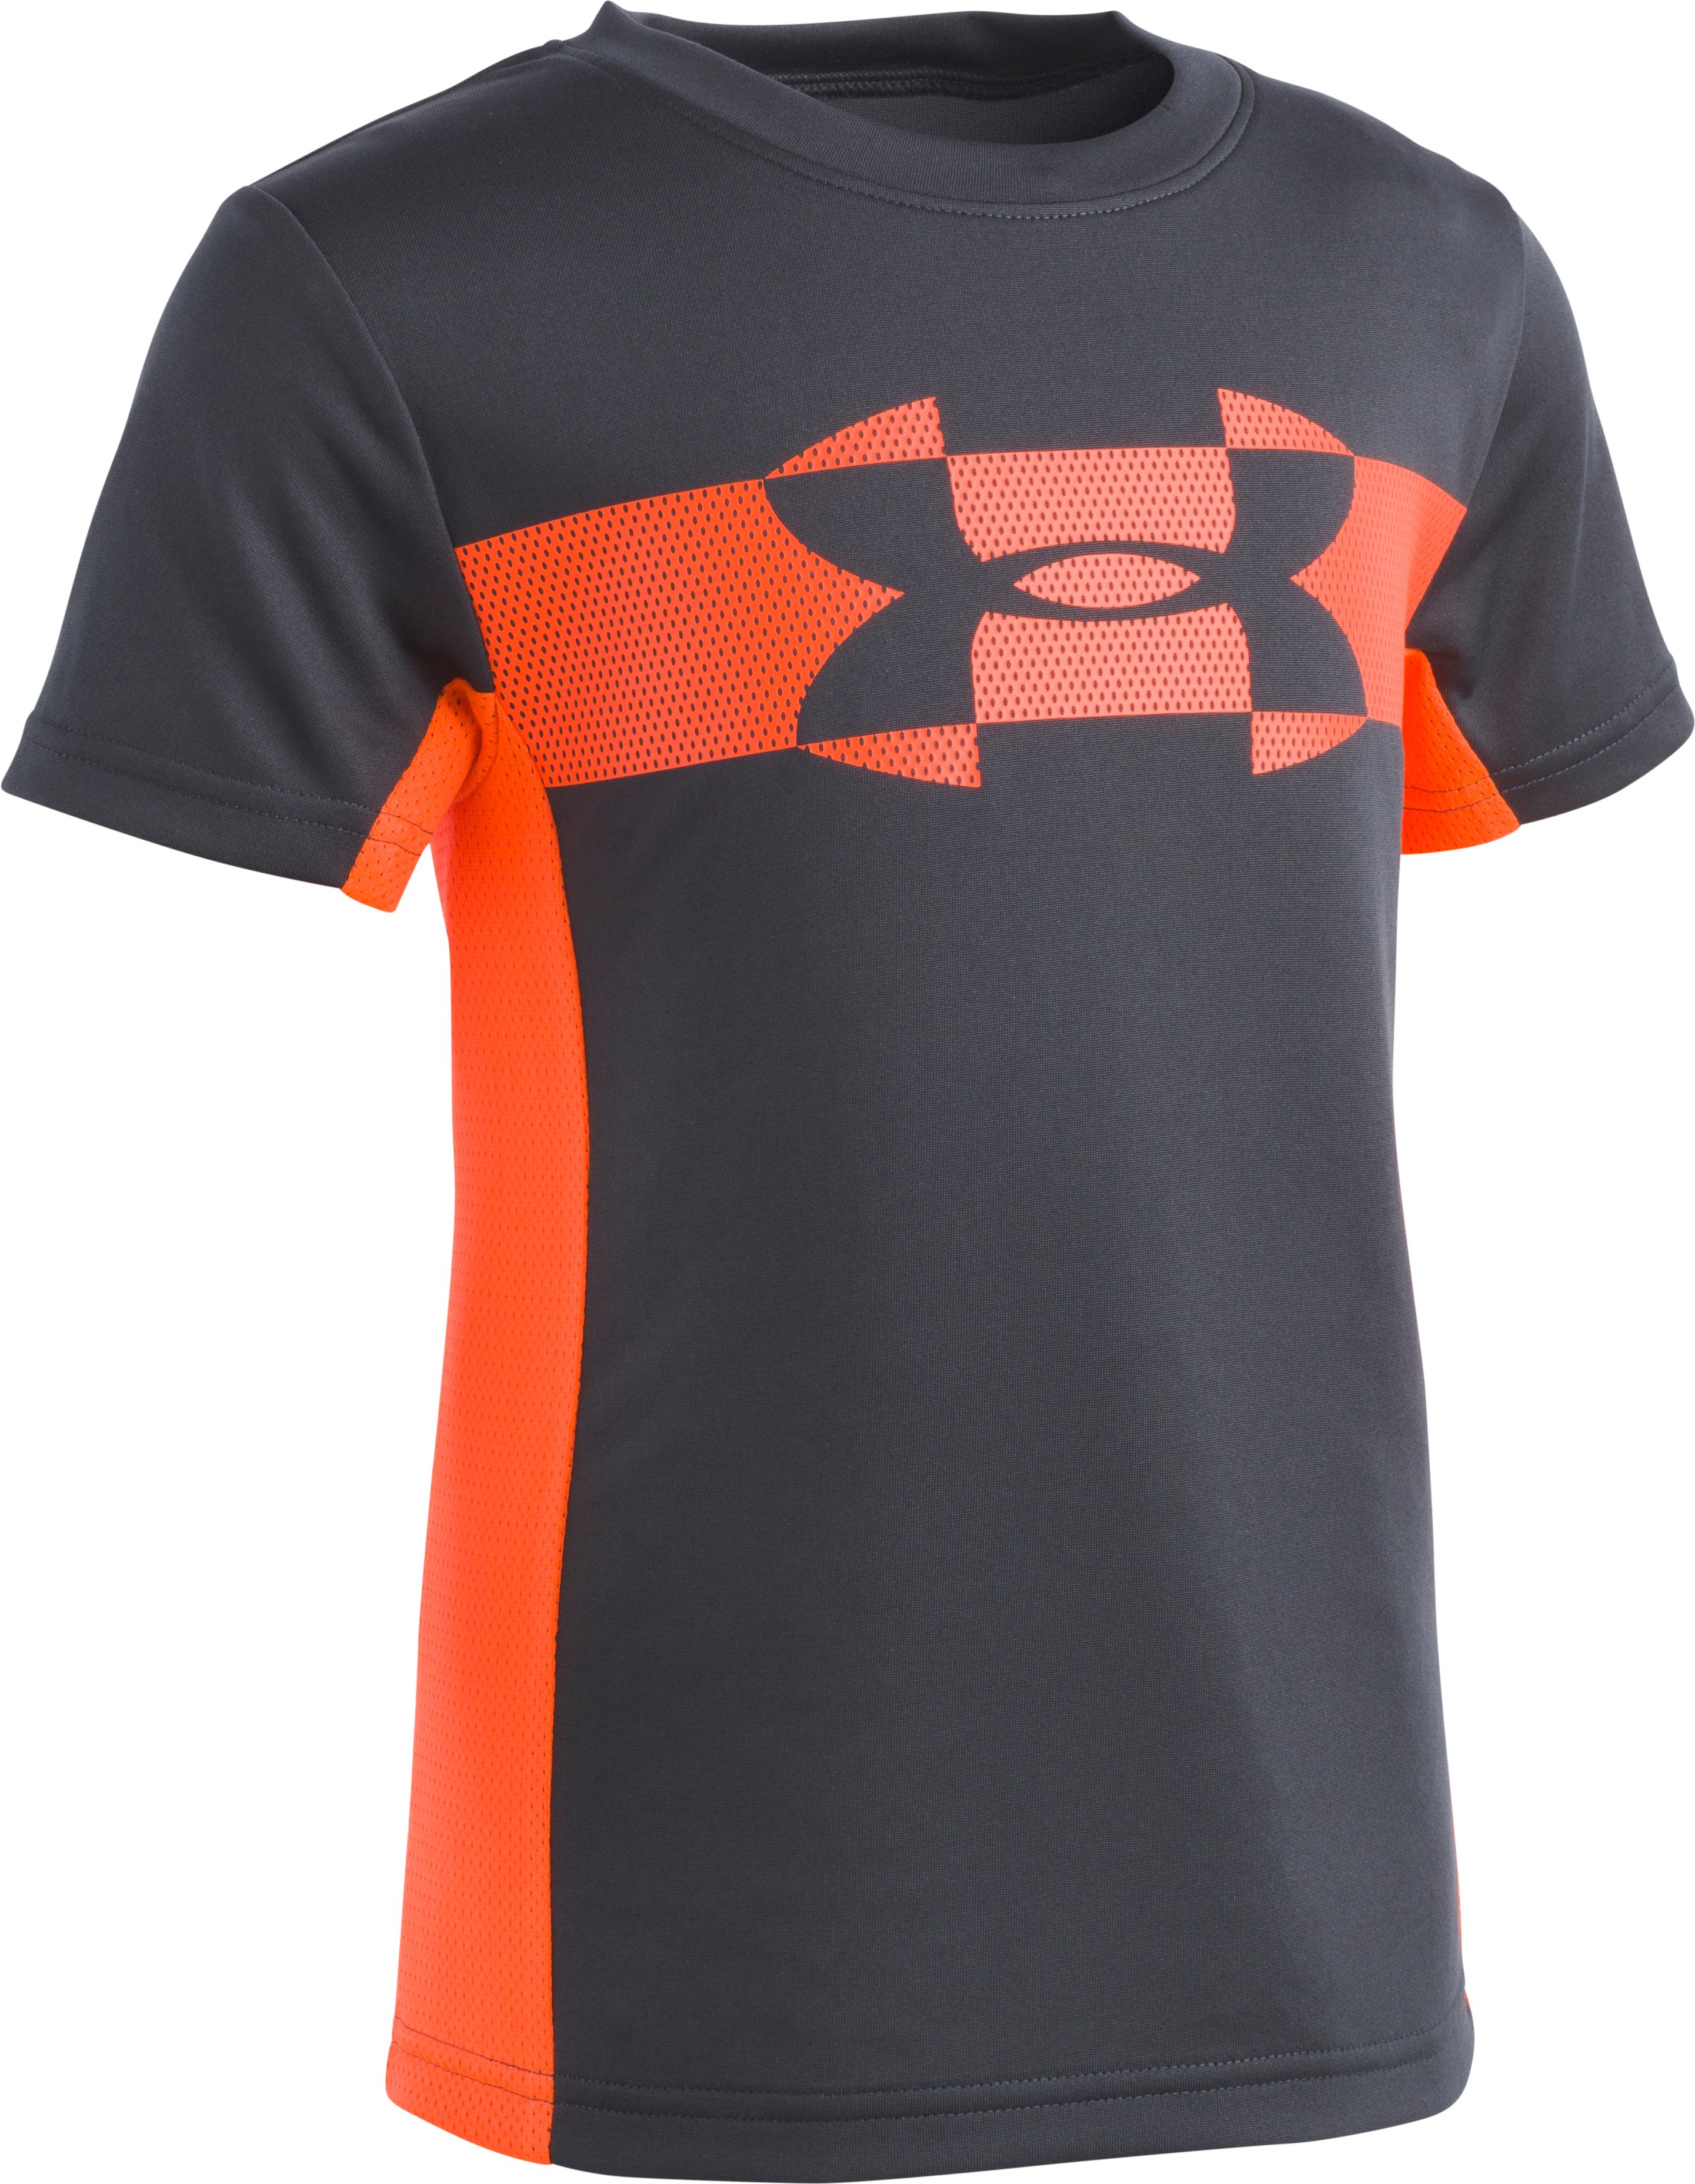 Boys' Toddler UA Mesh Logo Tech T-Shirt , ANTHRACITE